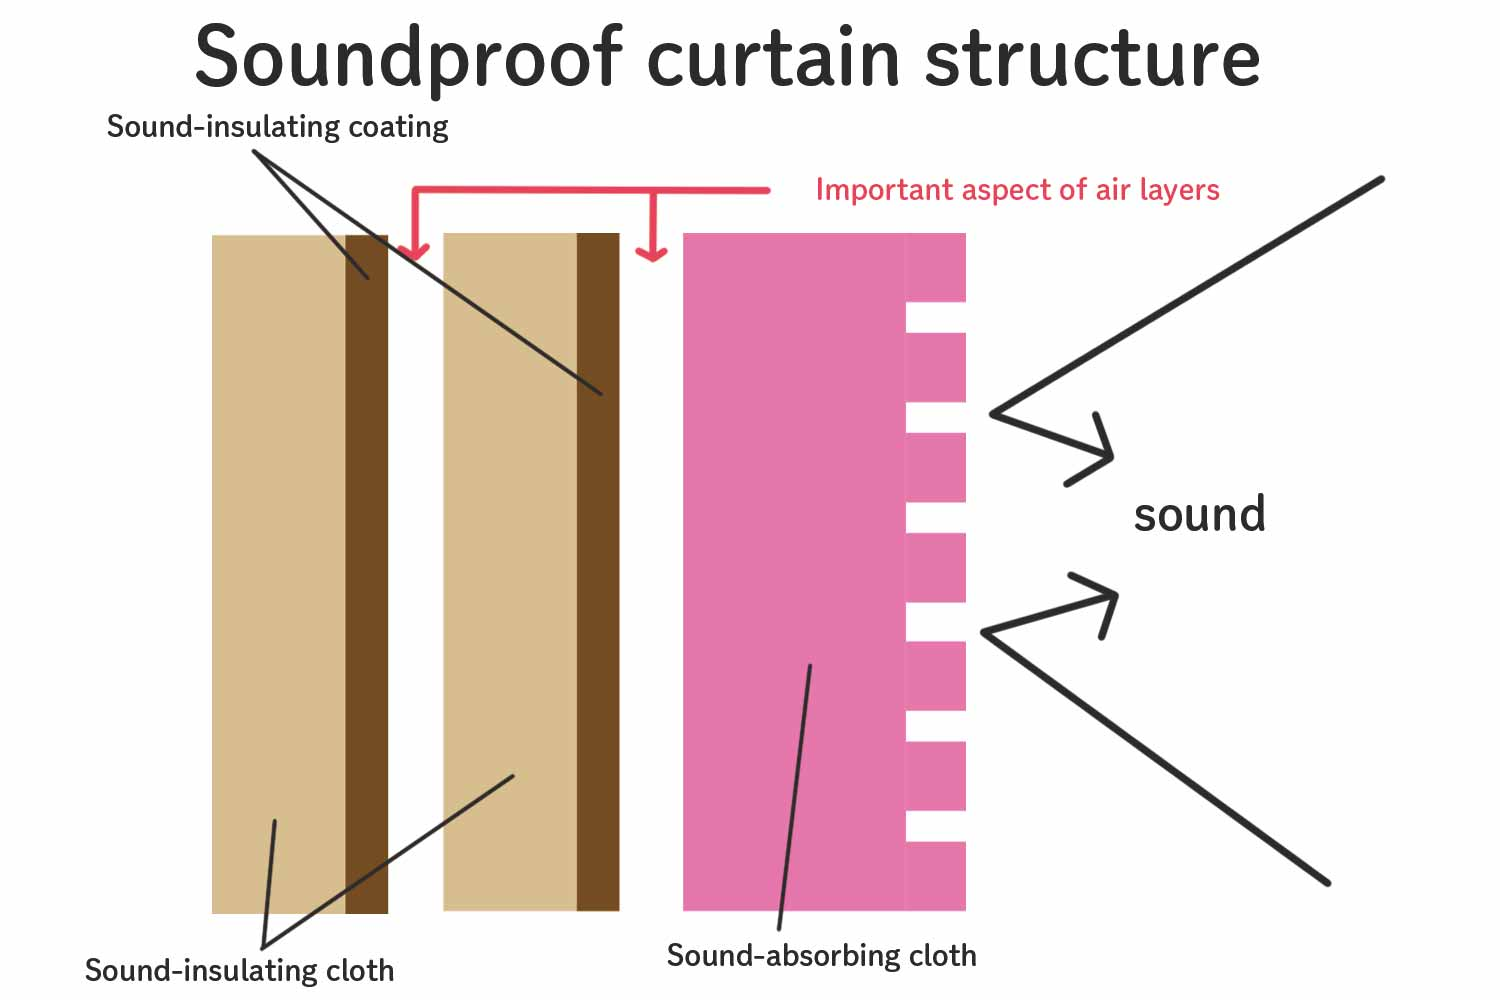 Soundproof curtain structure